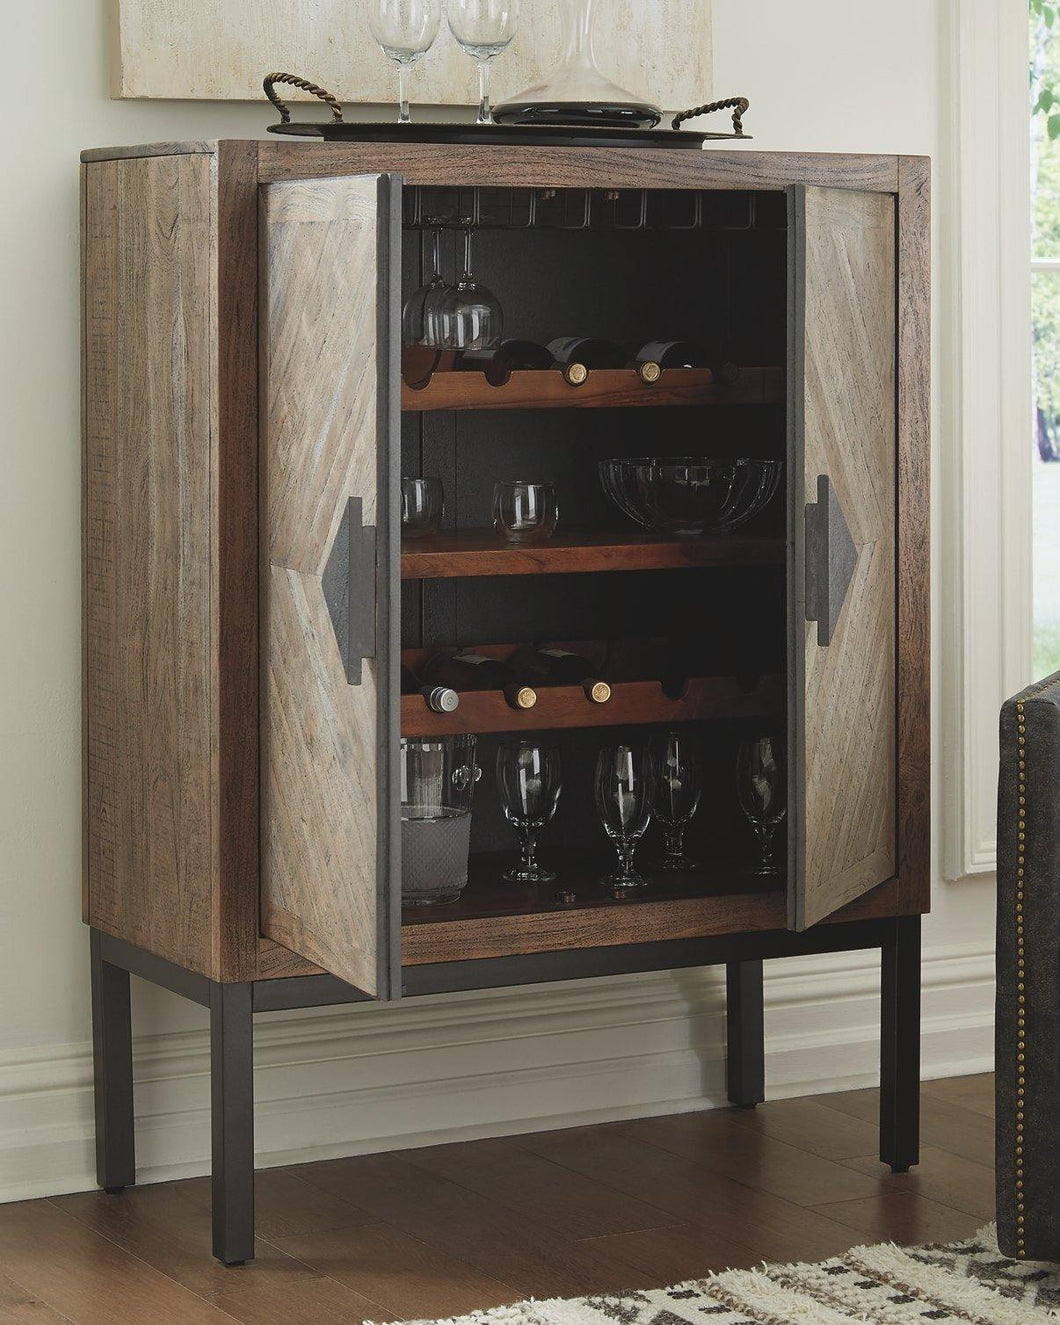 Premridge Bar Cabinet A4000252 Storage and Organization By Ashley Furniture from sofafair